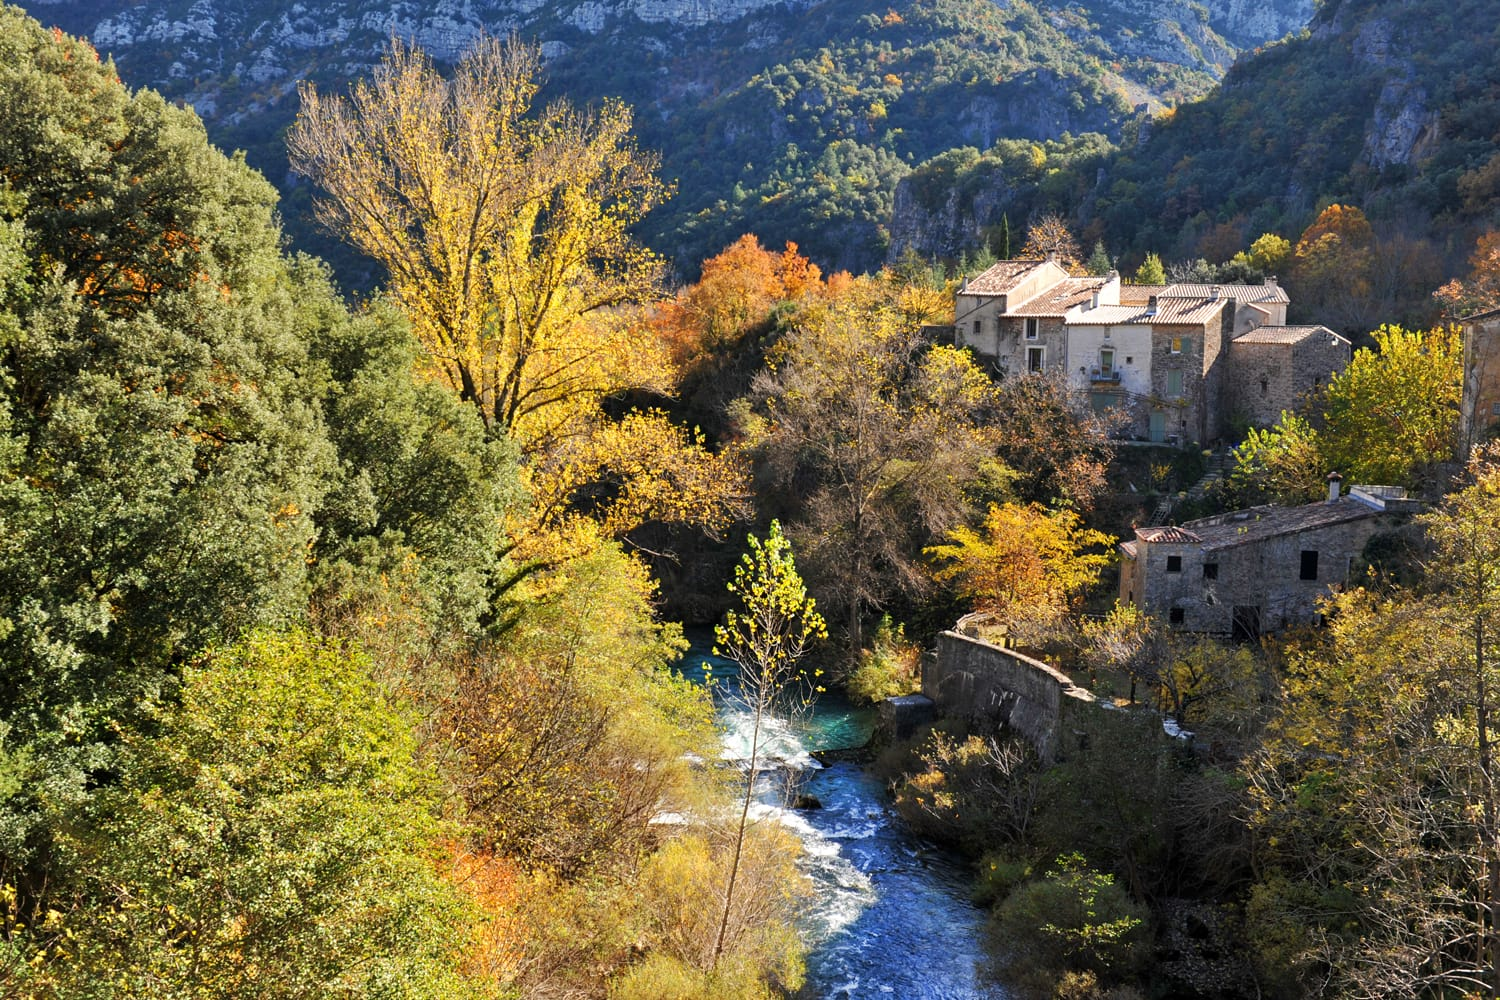 Typical village in Cevennes Mountains with river